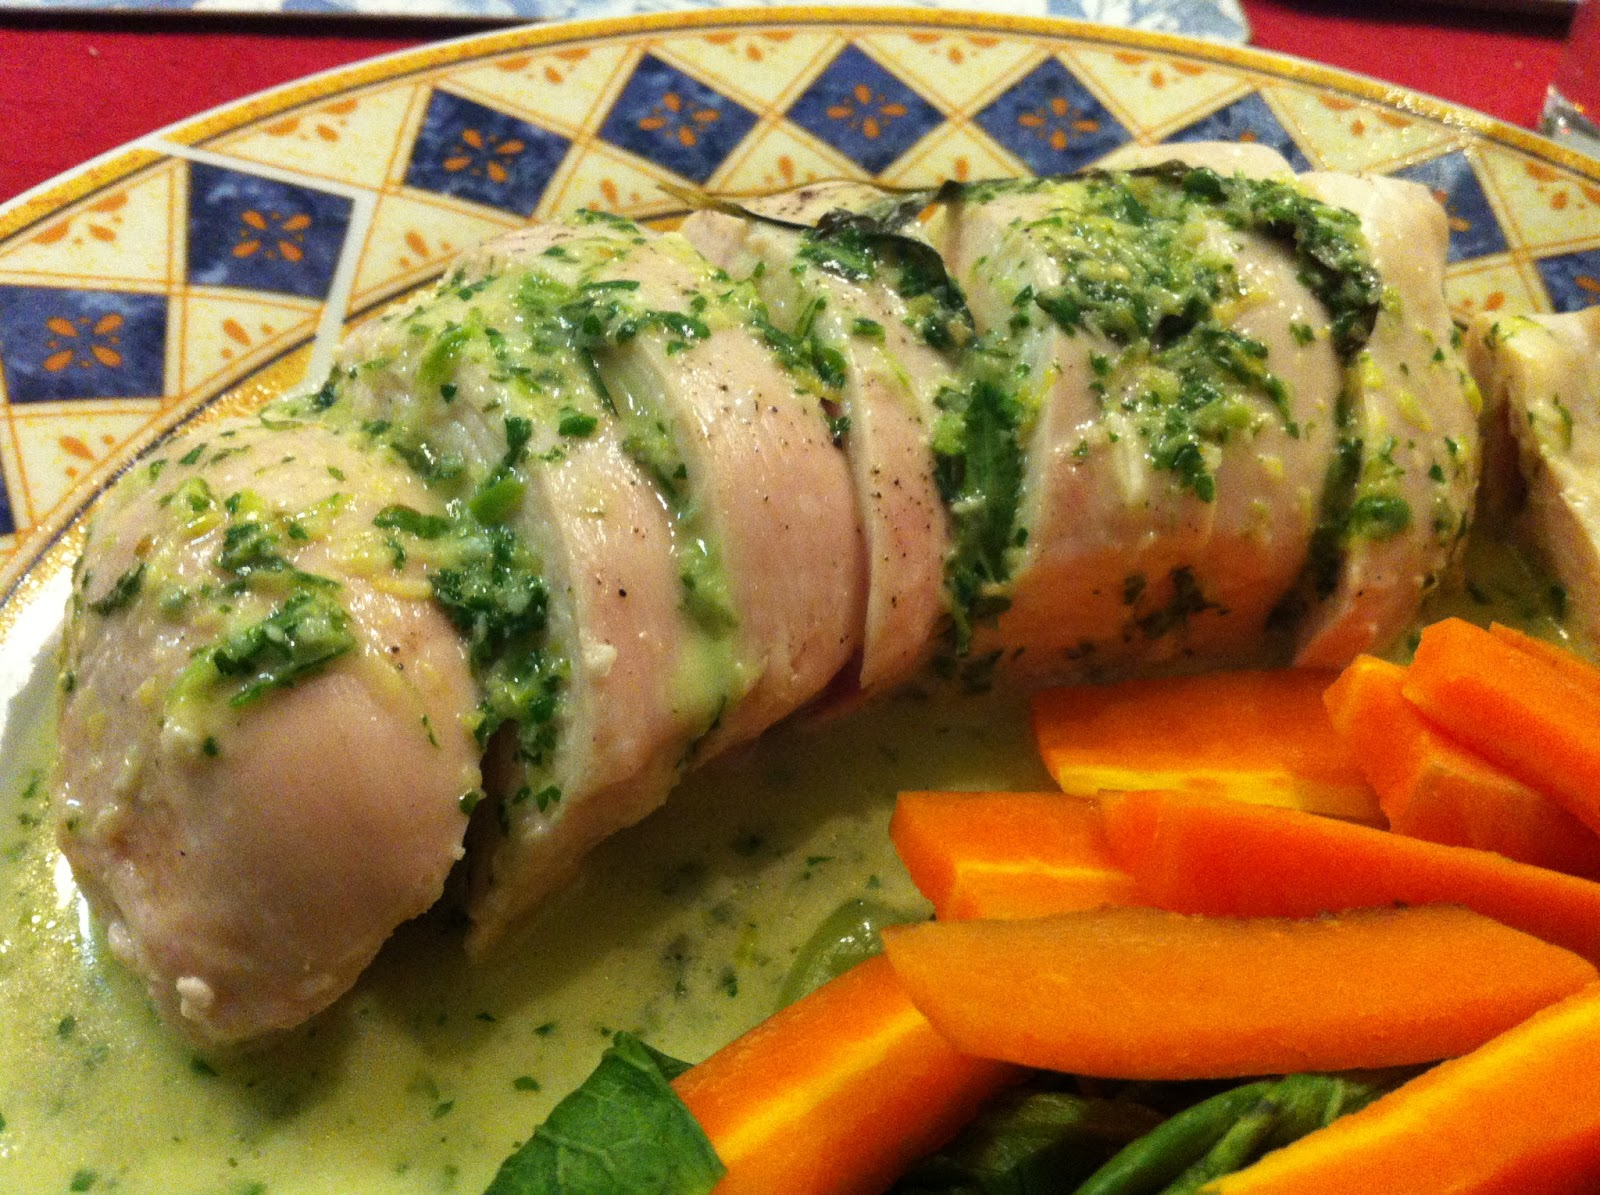 Breasts filleted in green sauce recipe 2022